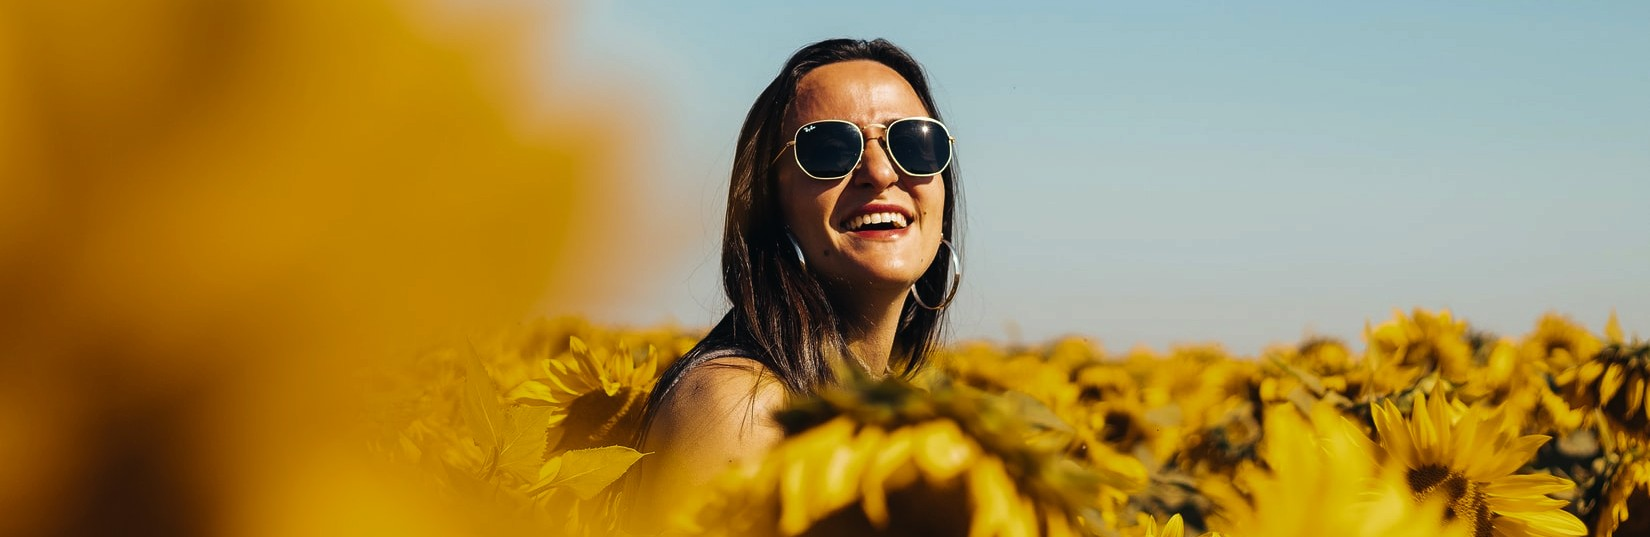 Person Smiling on a Sunflower Field | Breast Cancer Car Donations